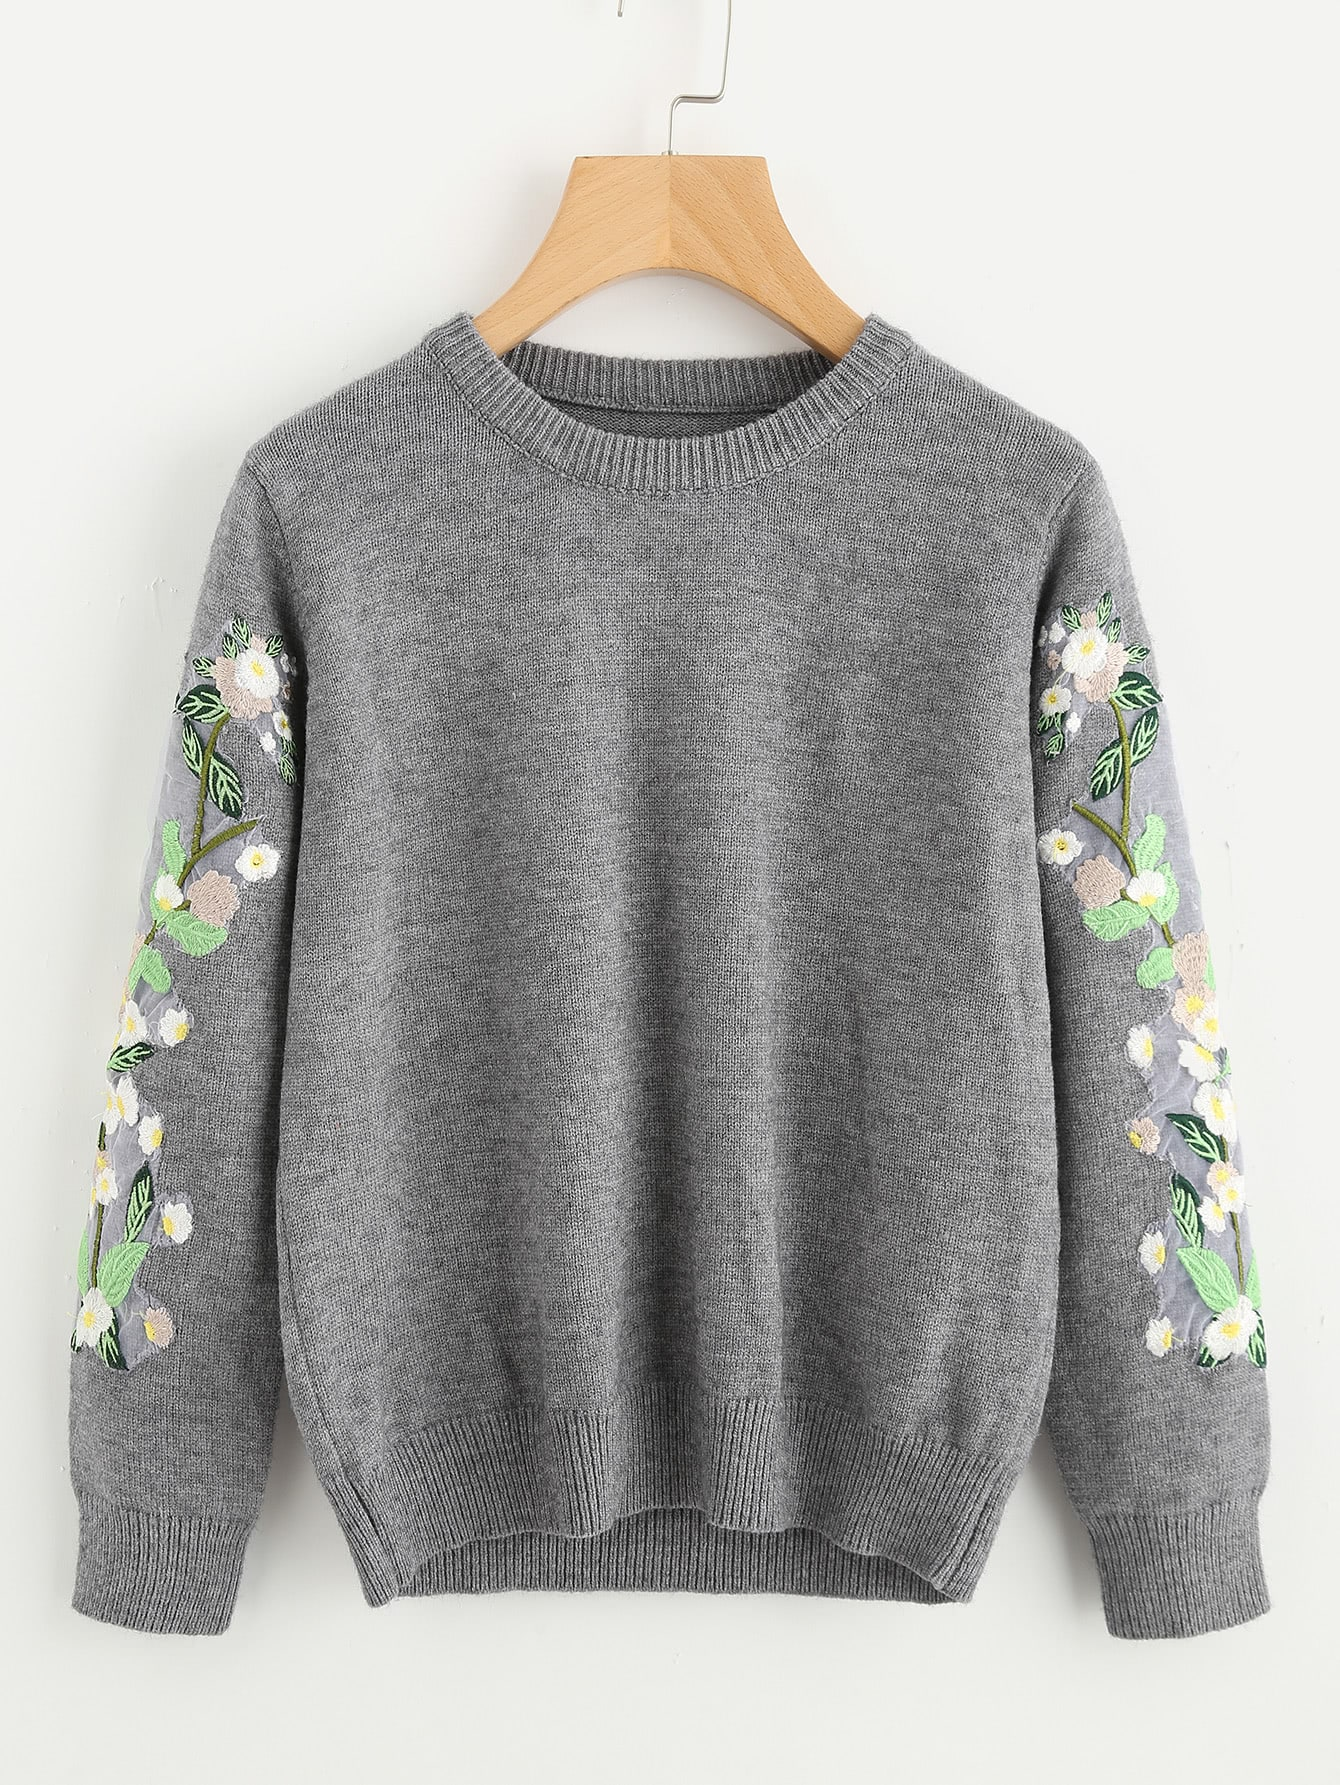 Embroidered Flower Applique Heather Knit Sweater cartoon embroidered sweater